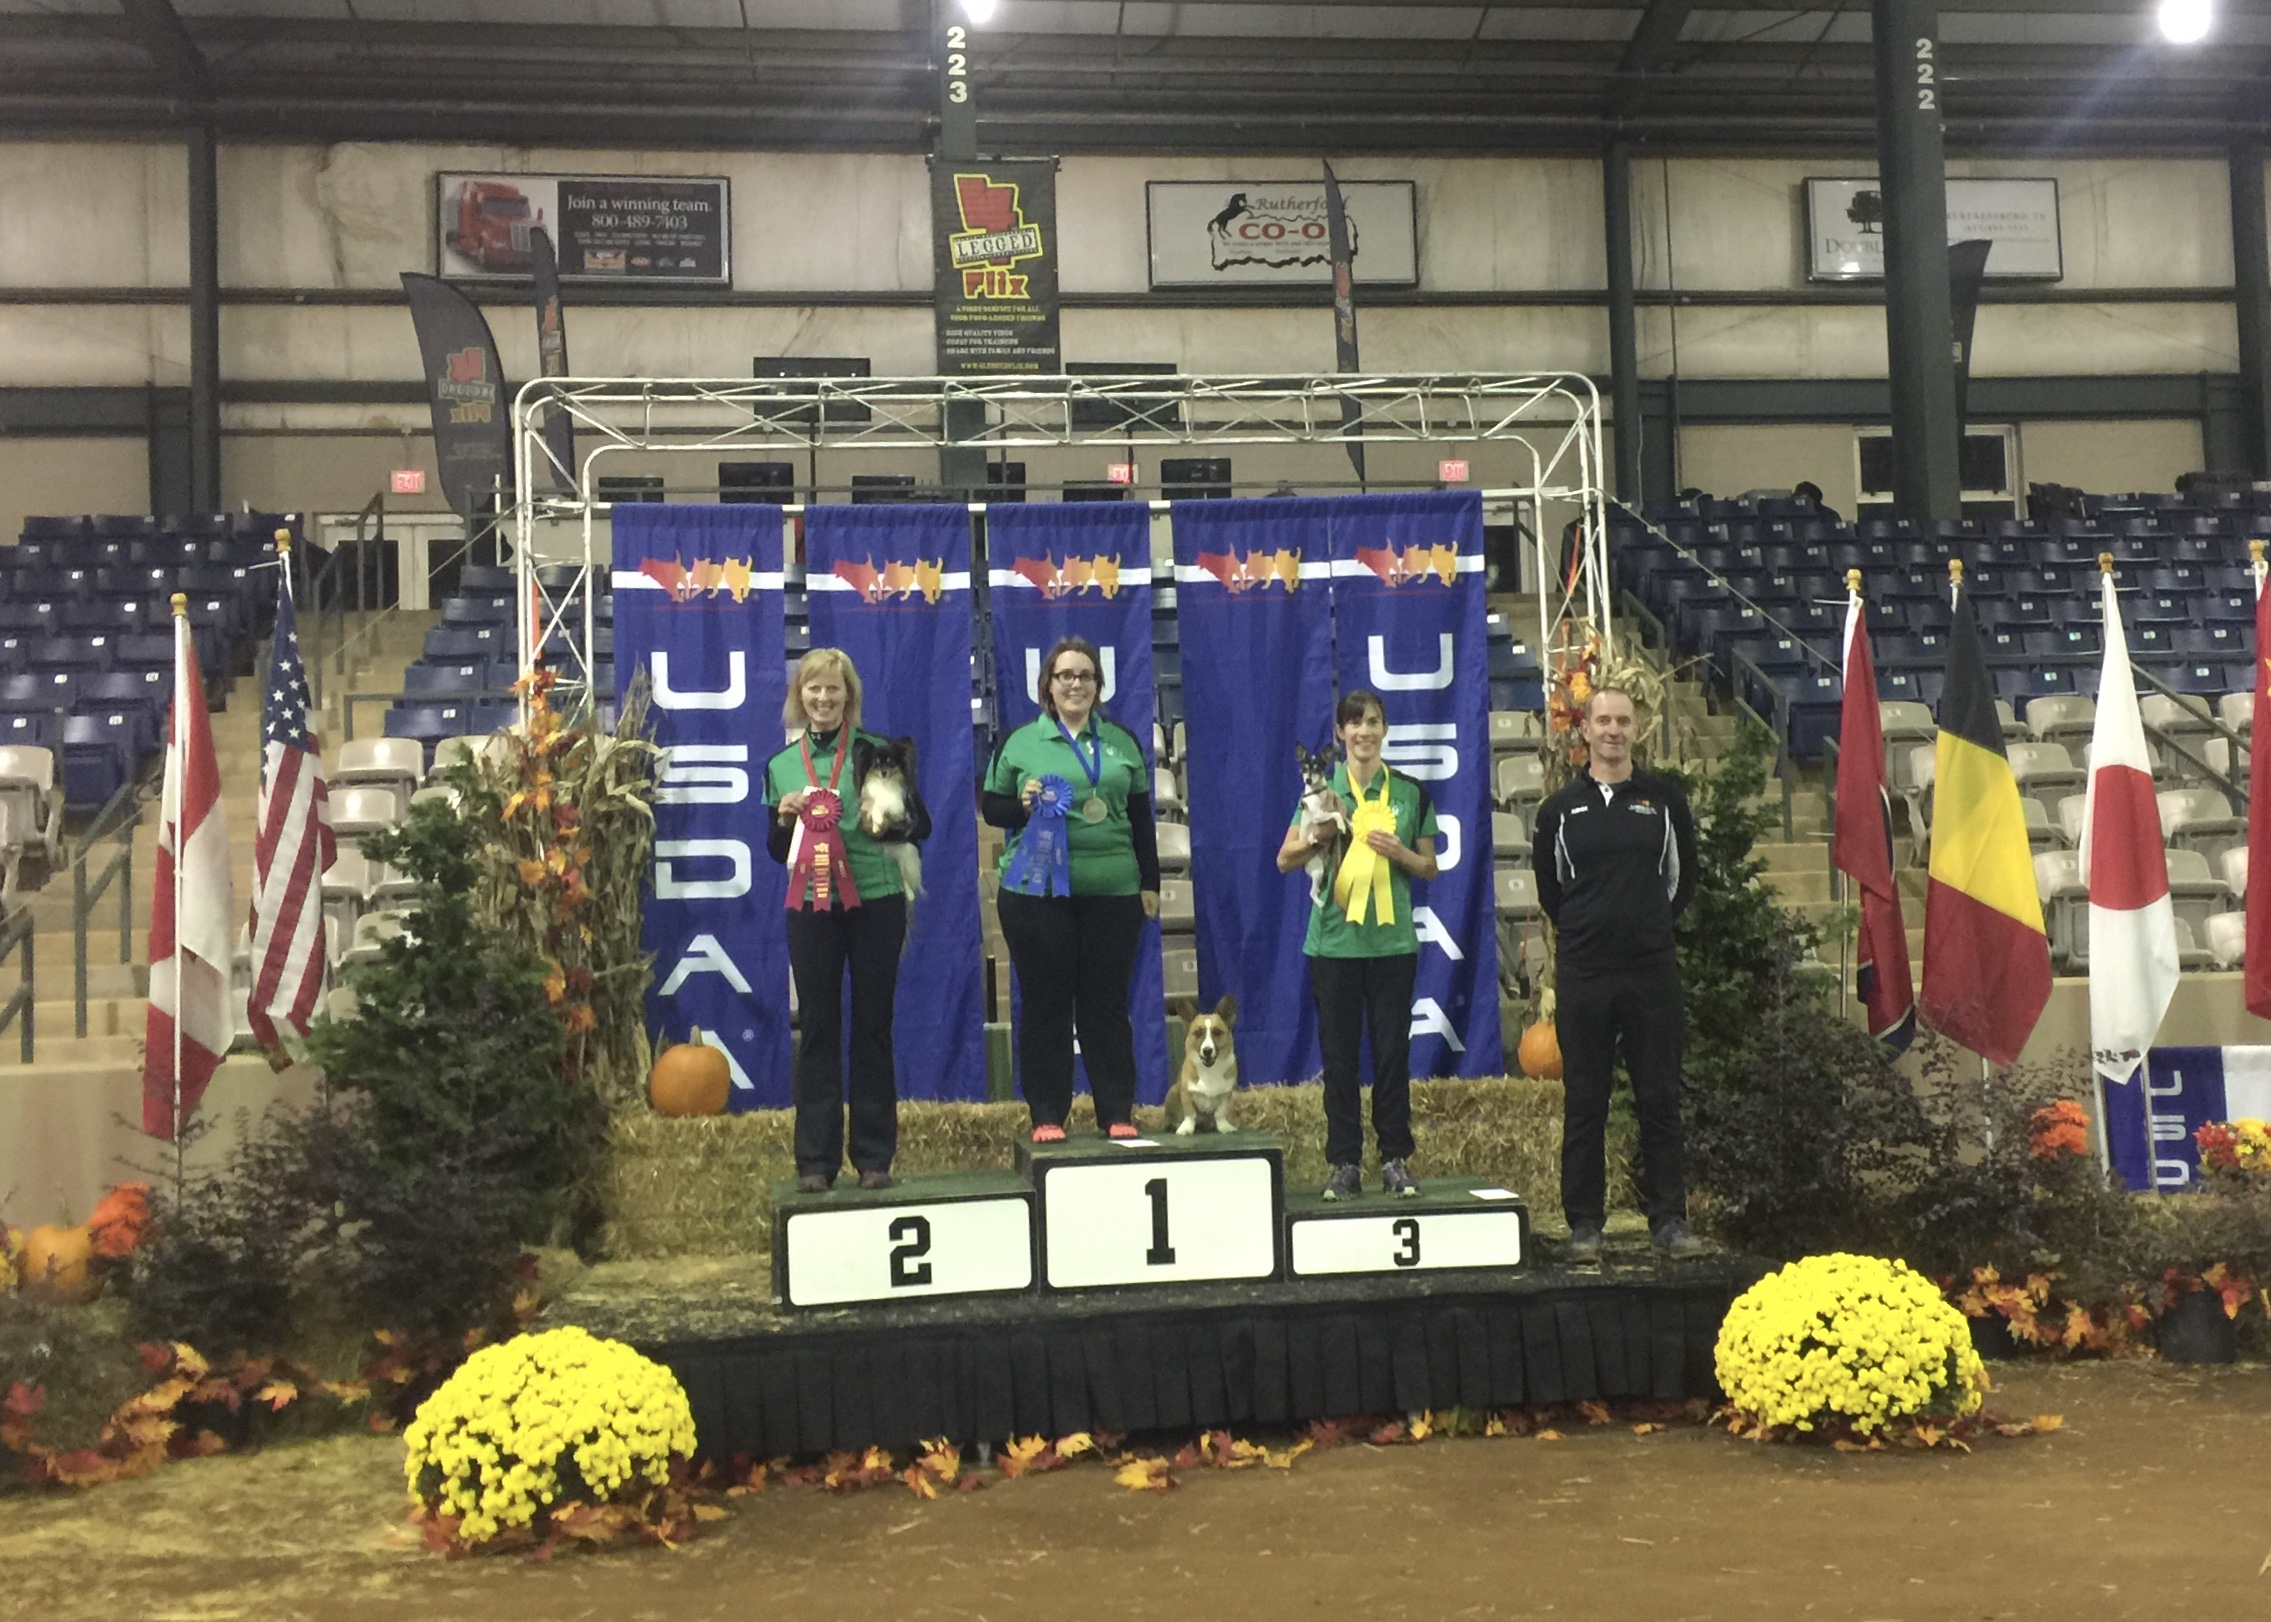 Courtney and Fran on the podium.